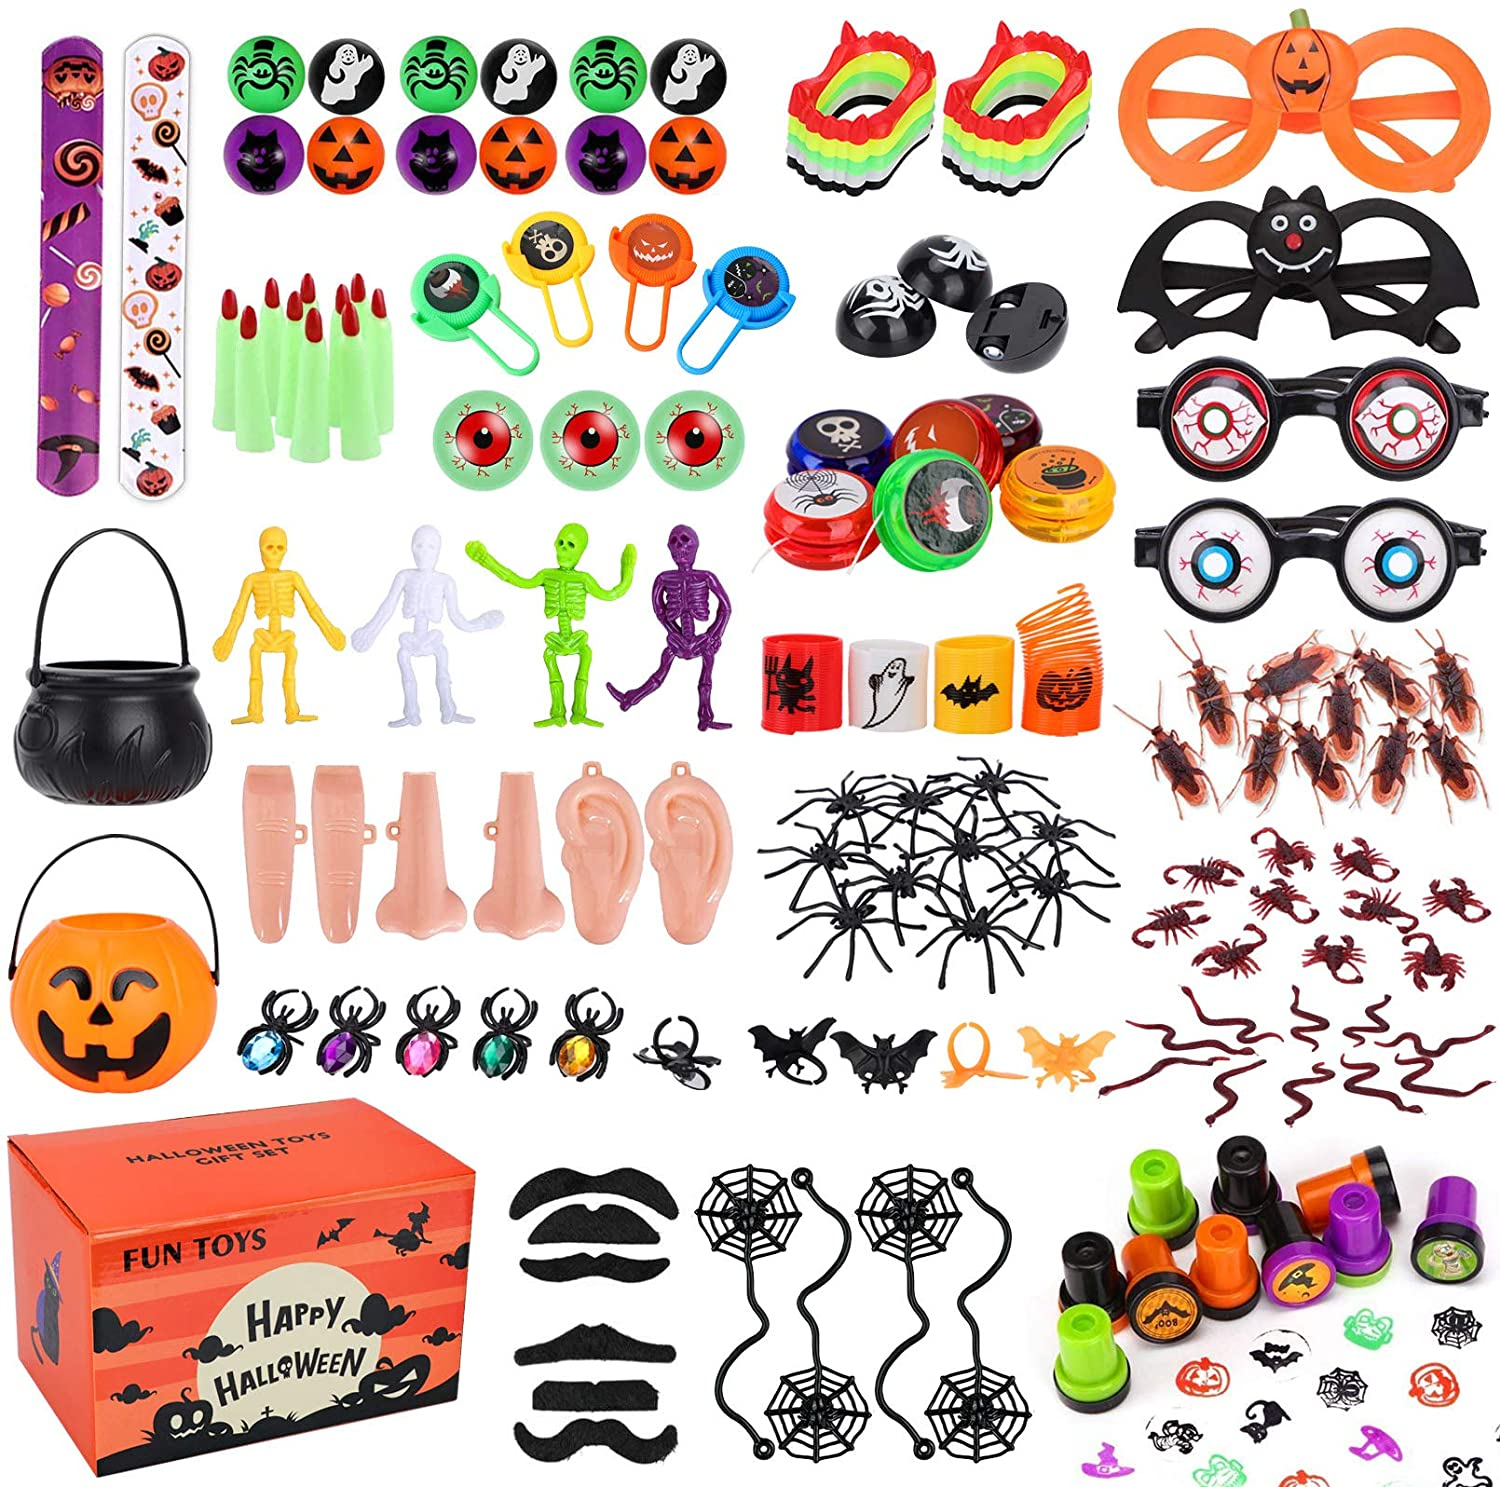 Morfone 140 Pieces Halloween Toys Party Favors Novelty Assortment Gift Set for Goodie Bag Fillers Trick or Treat bags School Rewards Class Prizes